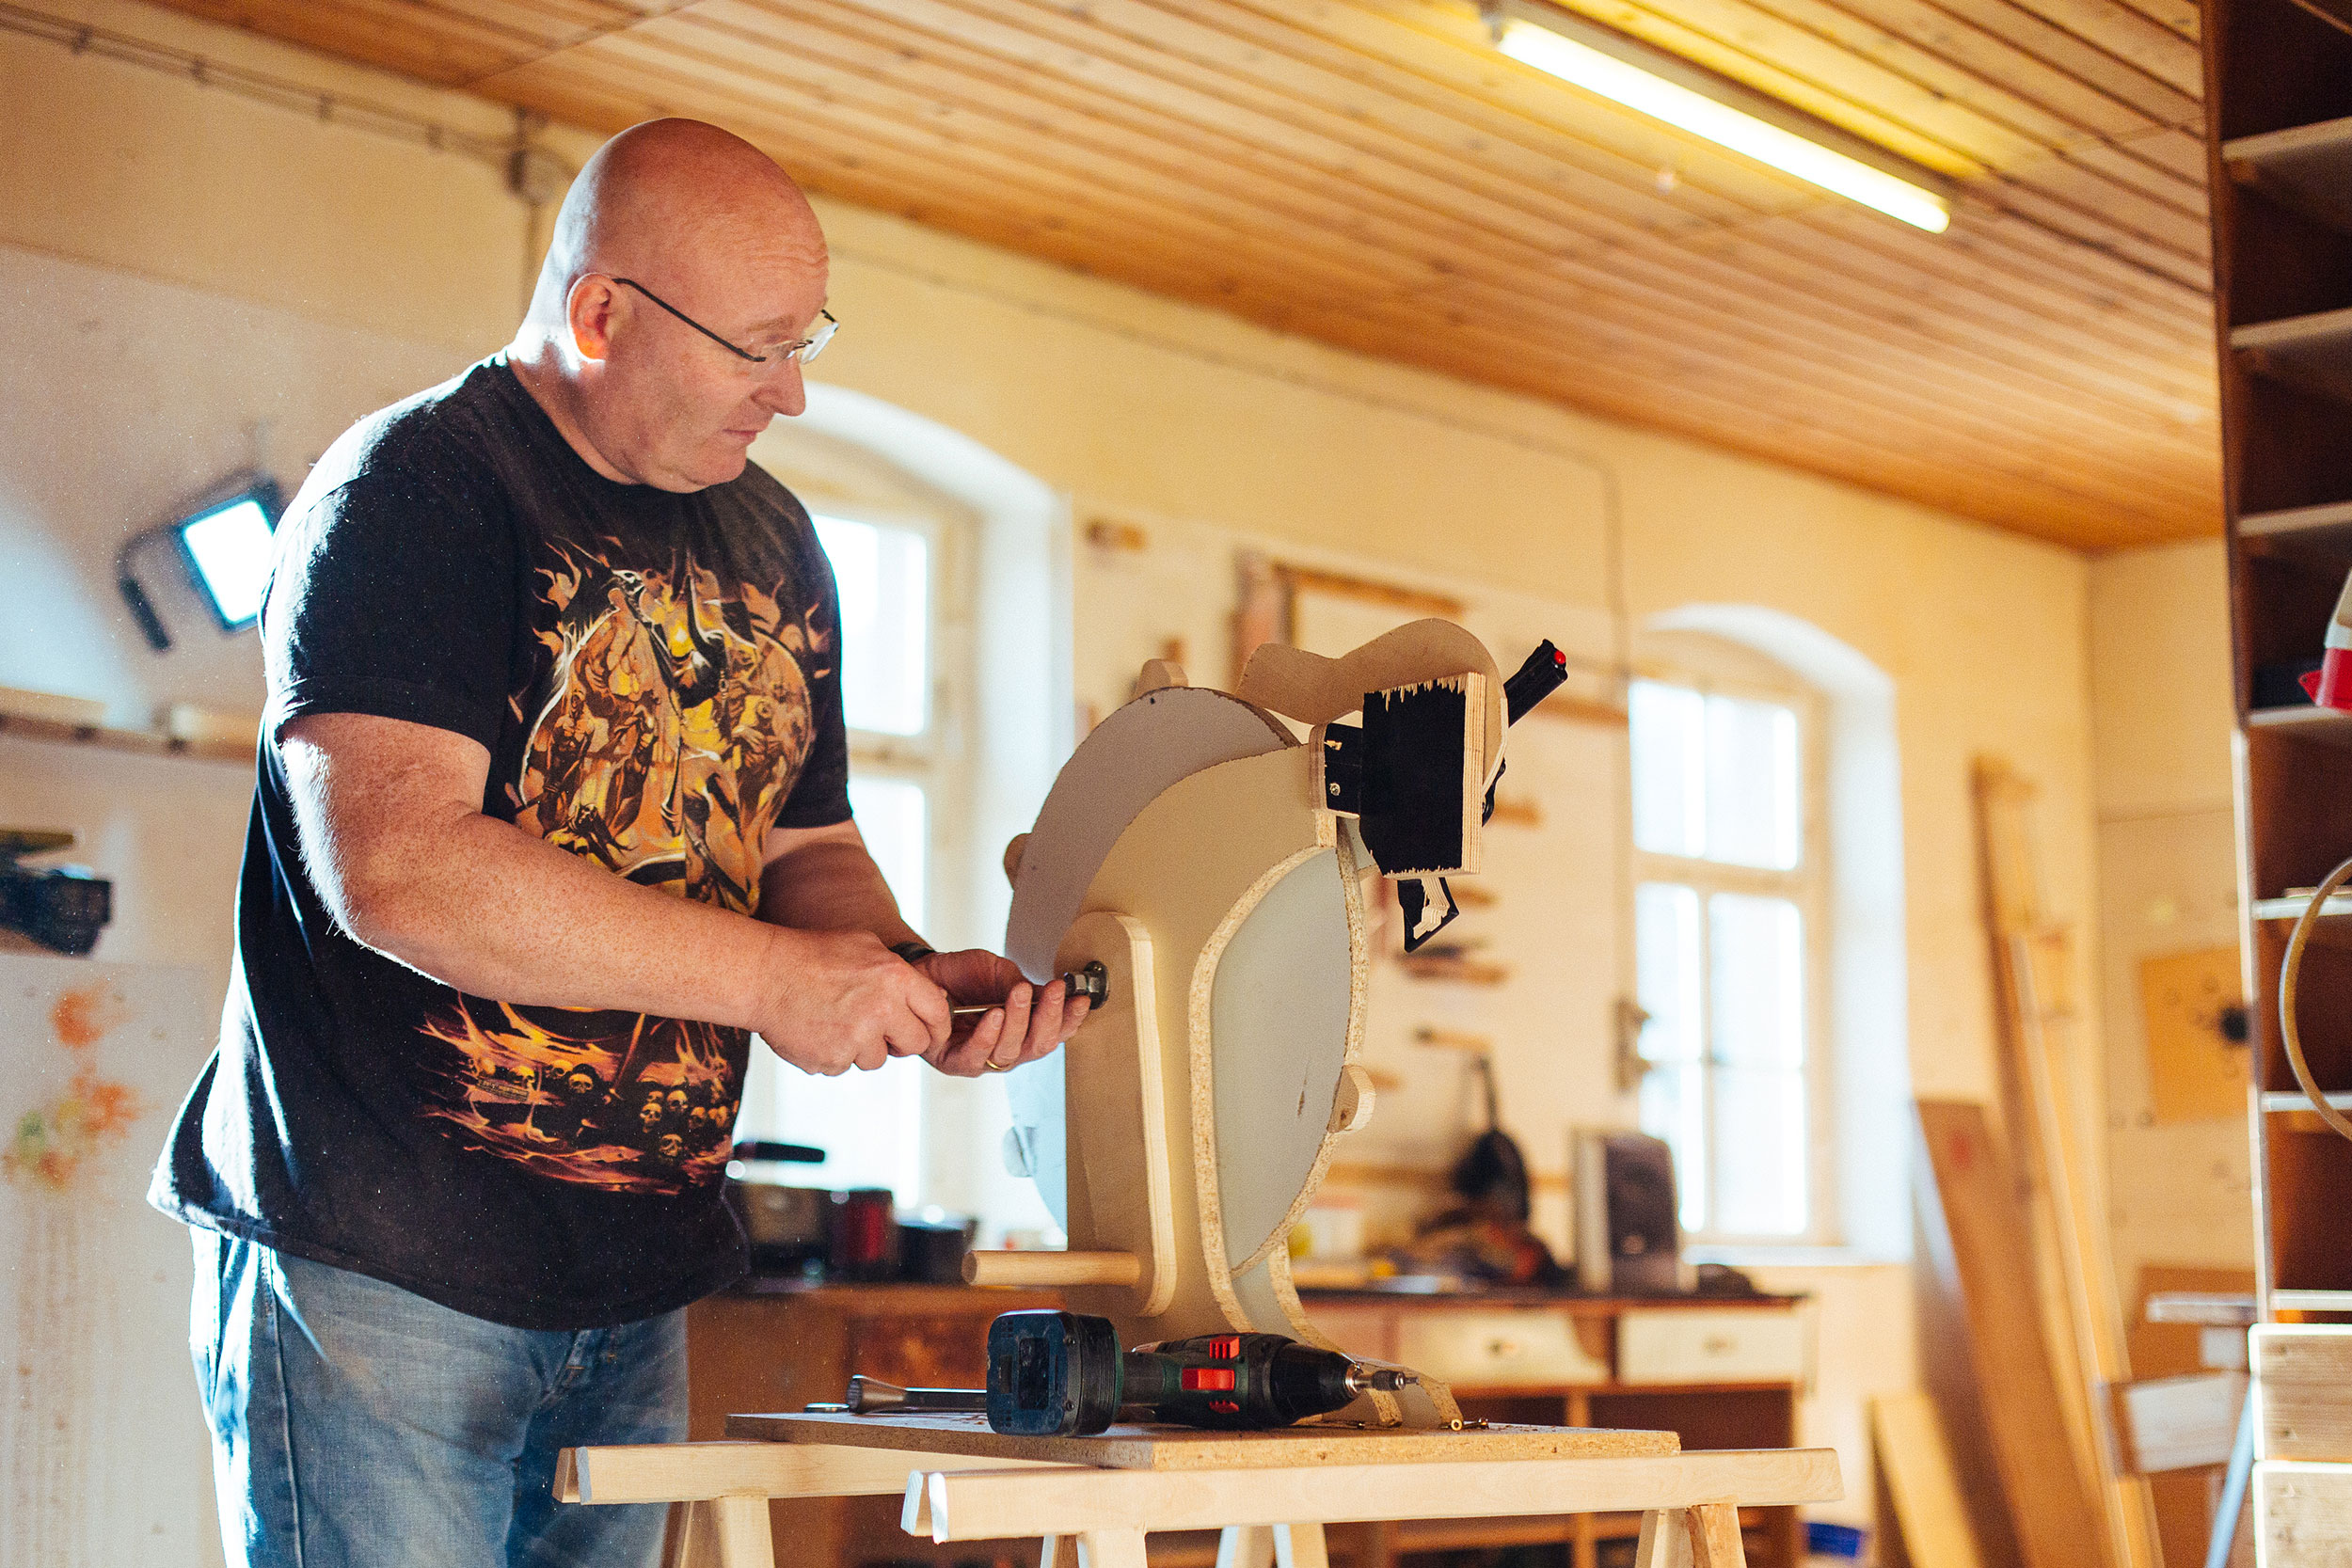 Jorg Sprave making the prototype in his studio.